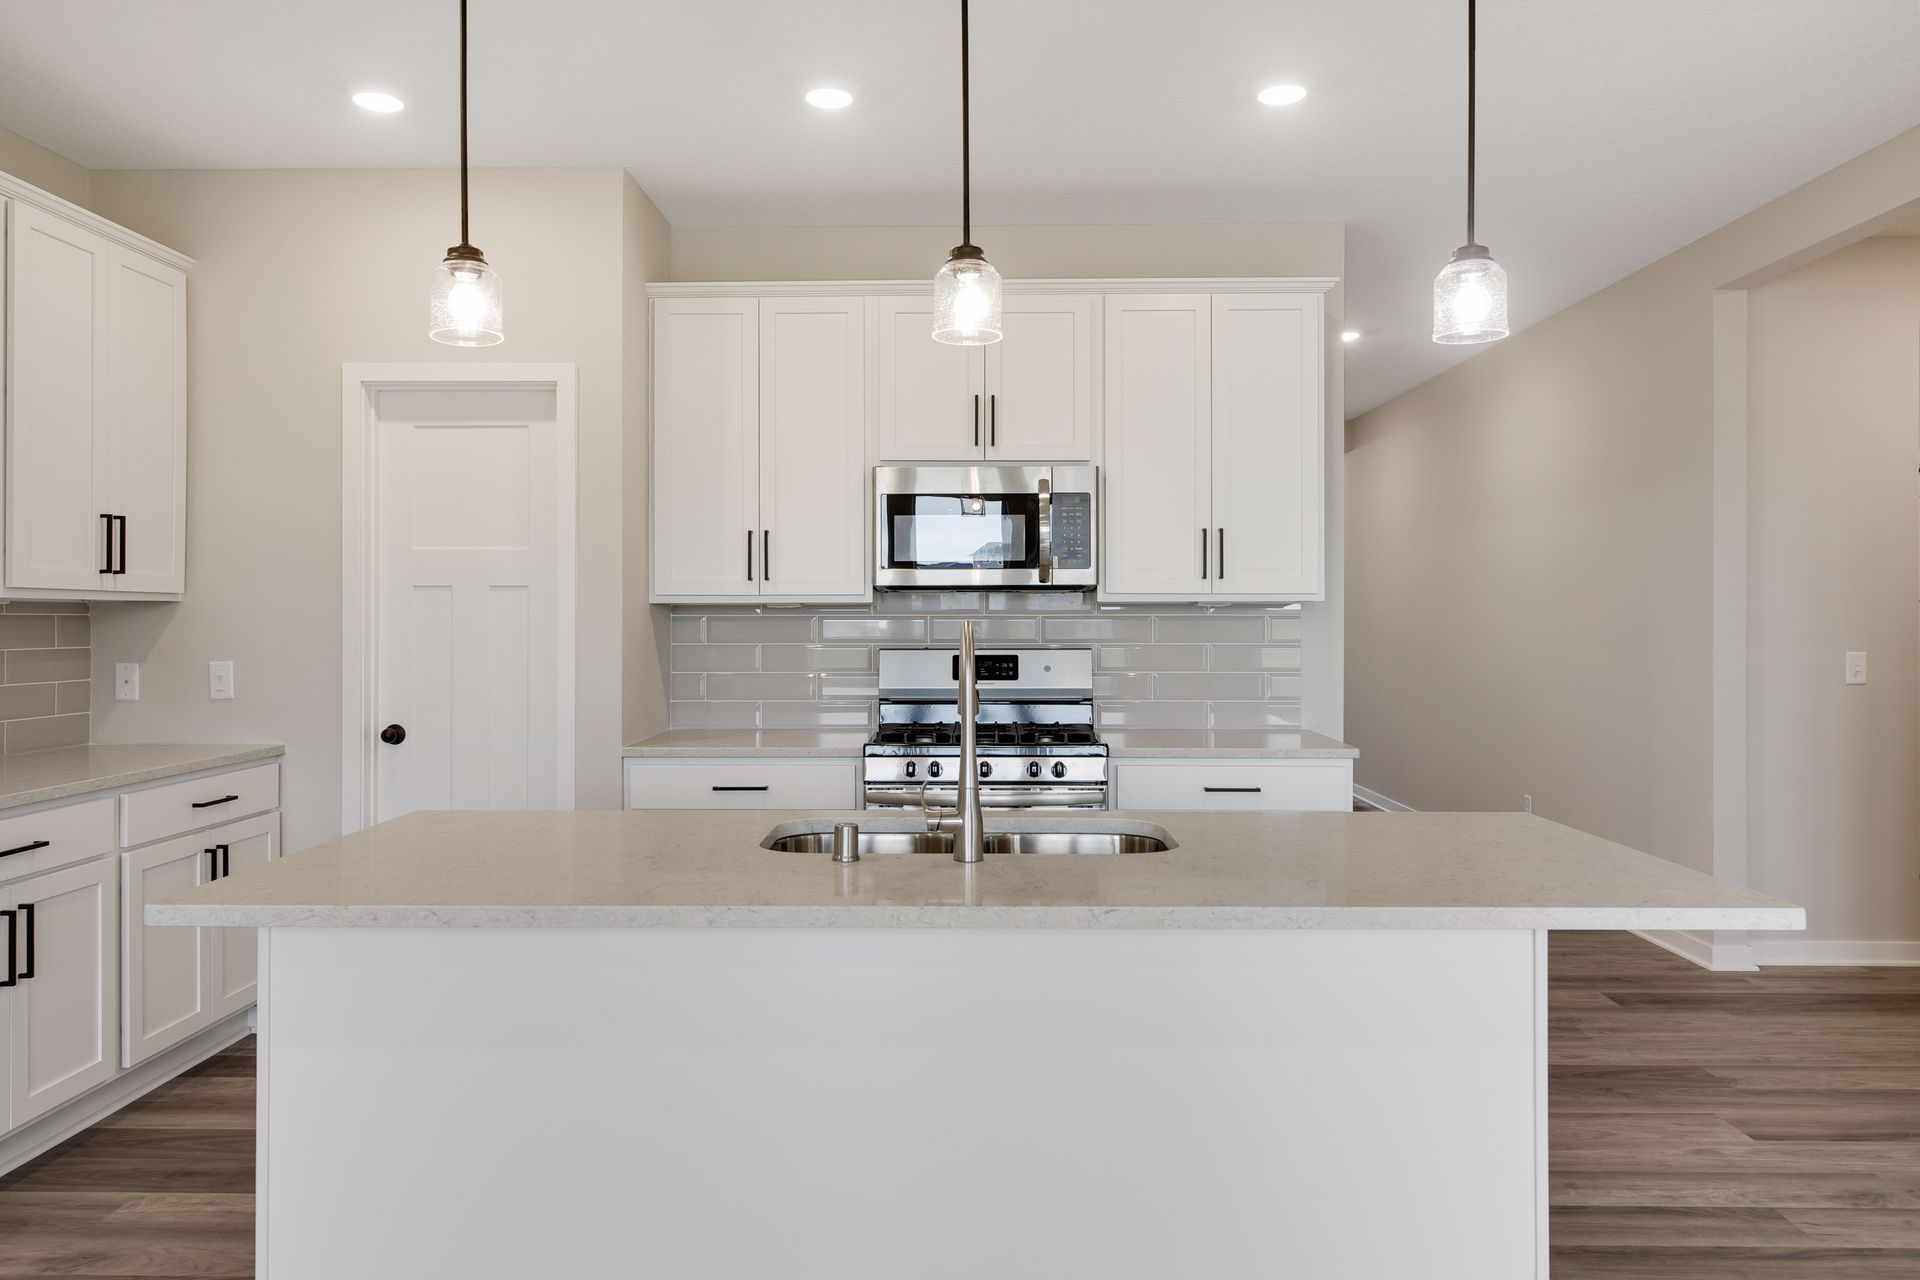 Kitchen featured in The Tamarack By Brandl Anderson in Minneapolis-St. Paul, MN